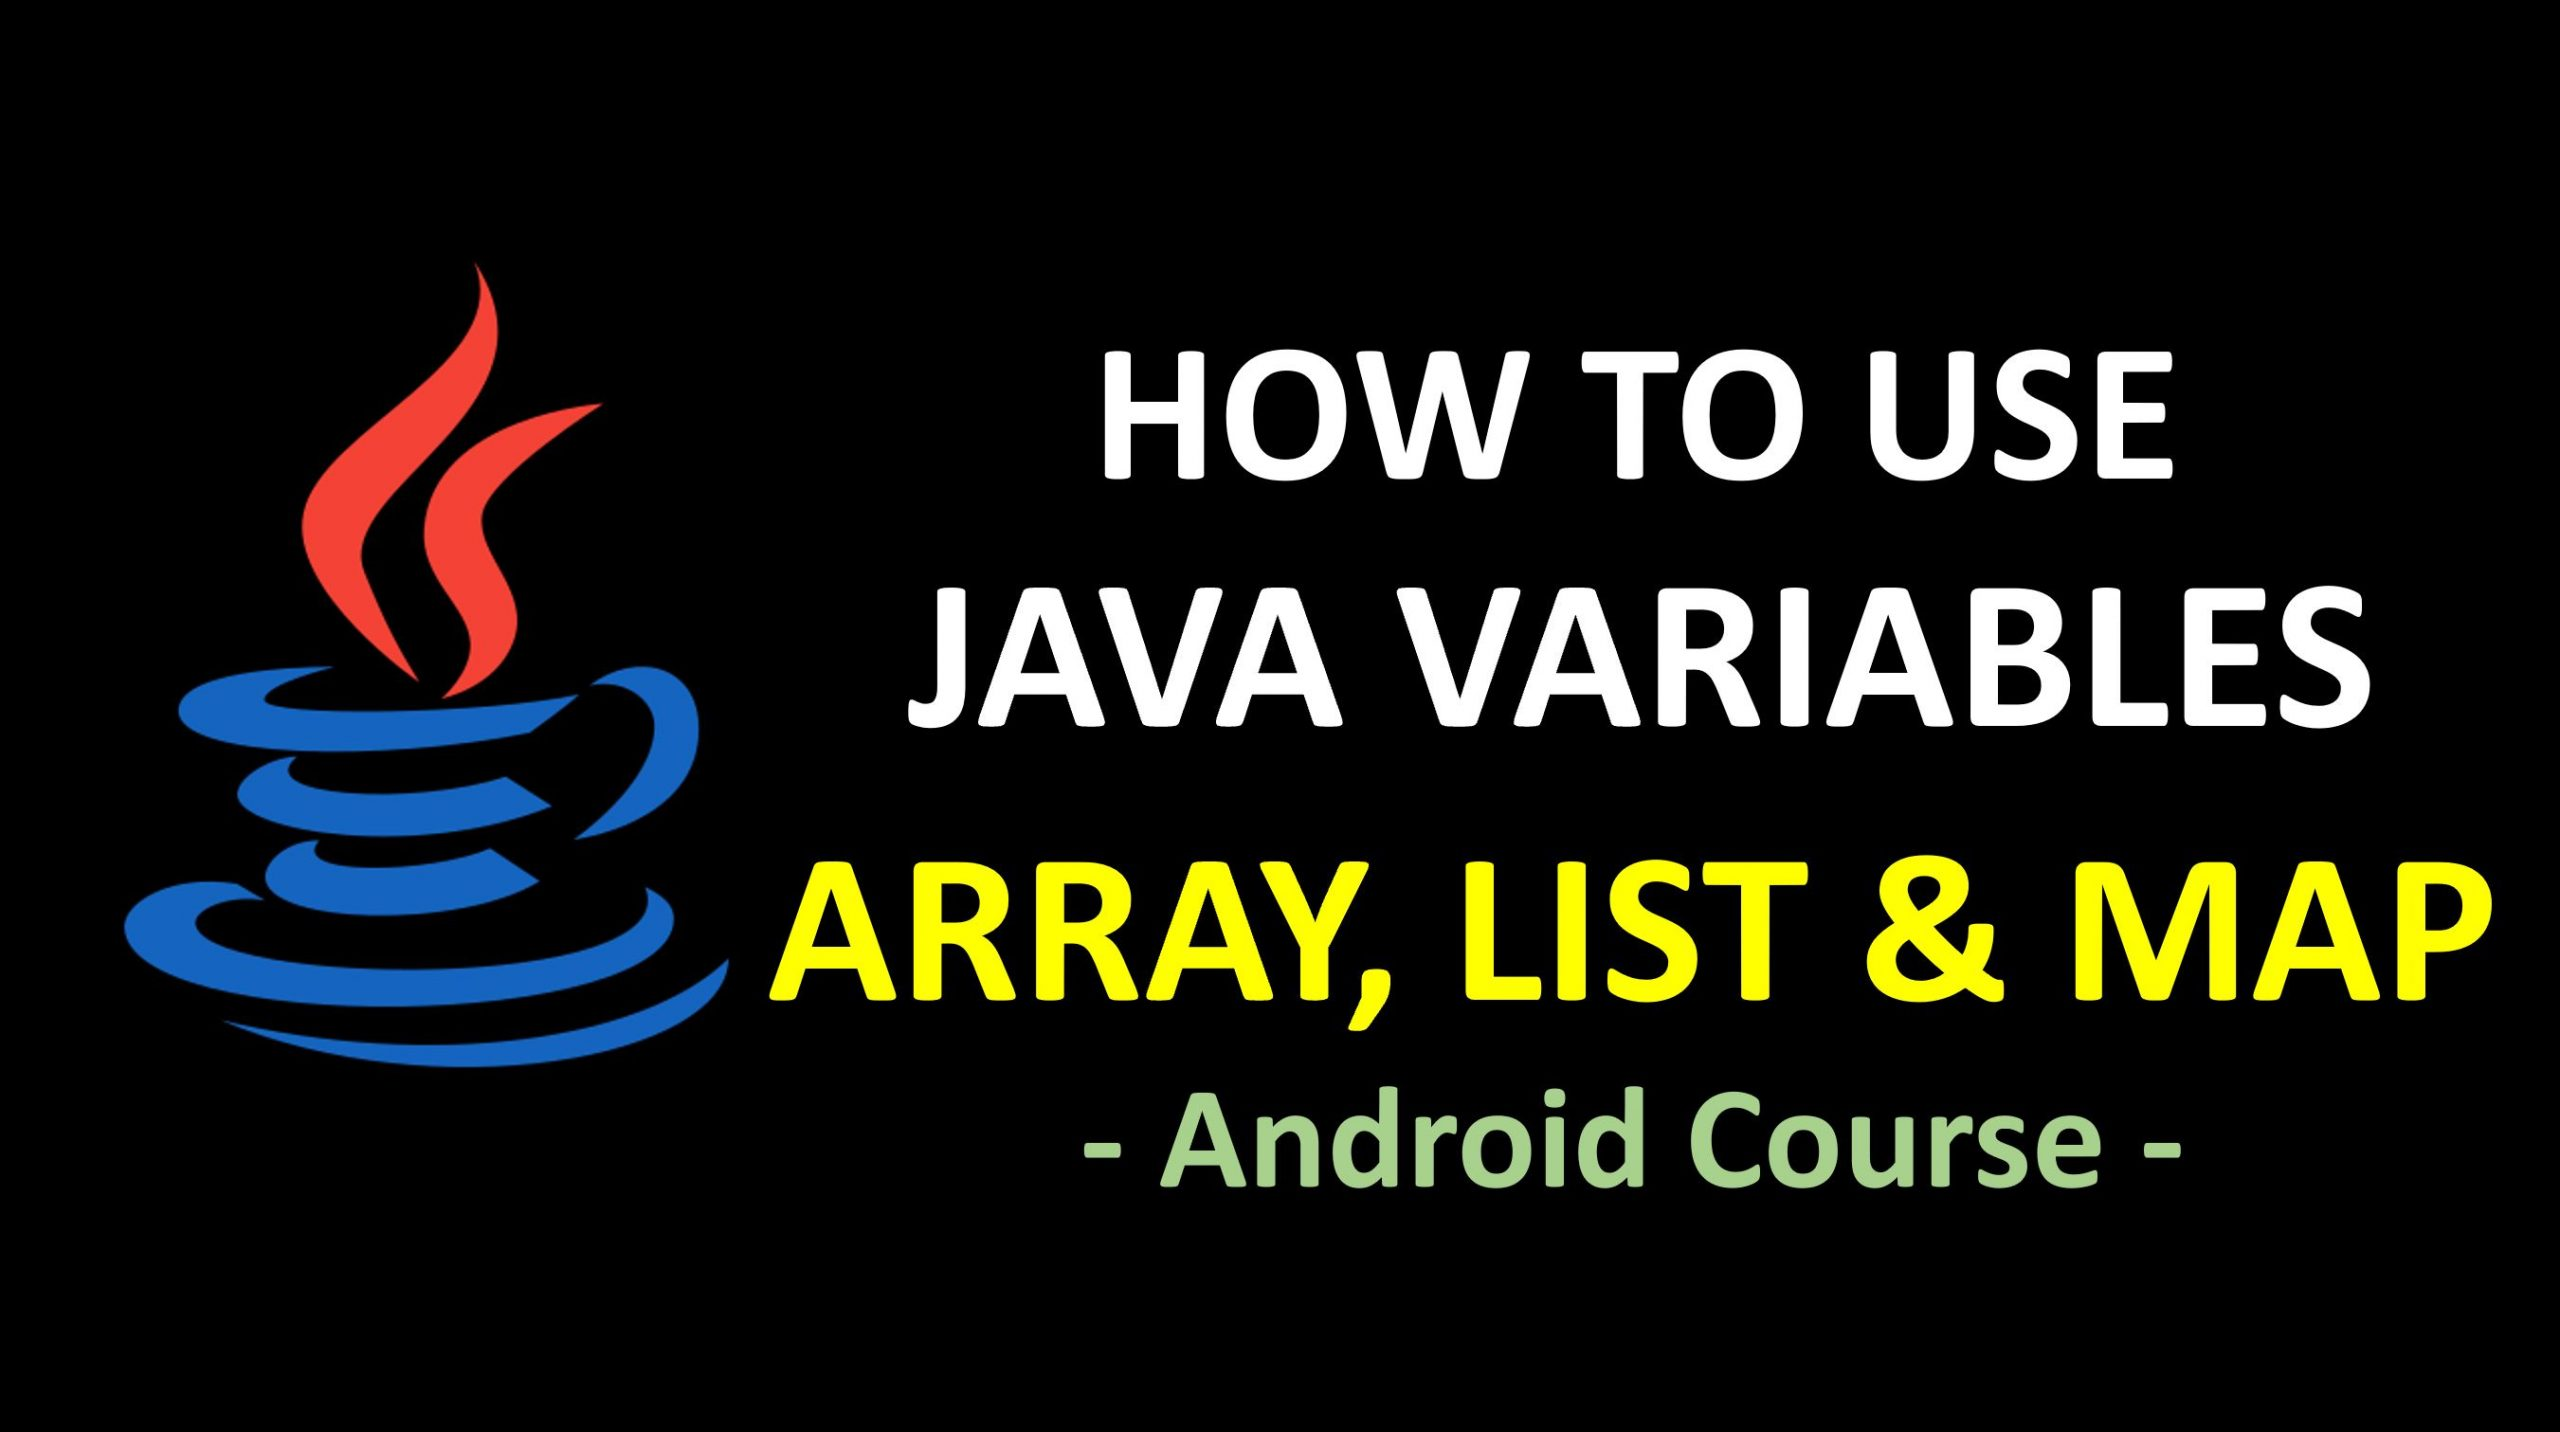 Android Course - How to use Java Variable Array List and Map